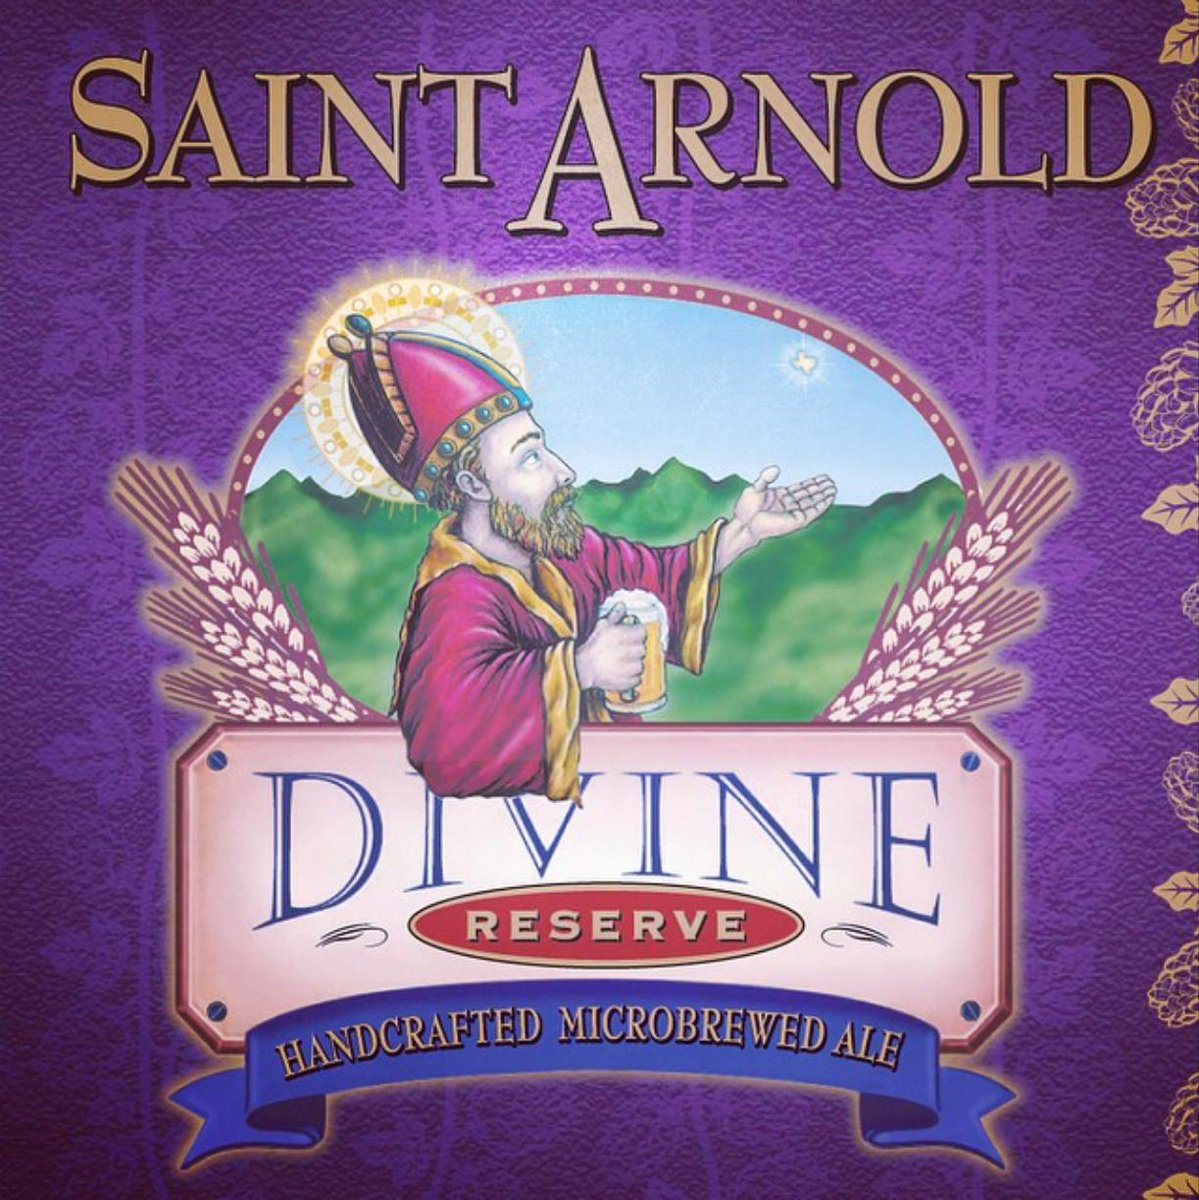 Happy Divine Reserve No. 15 Day everyone! #DR15 Learn about DR15, DR5 redux, here: http://t.co/ZN8fBrxsSc http://t.co/05ZLetr7sy